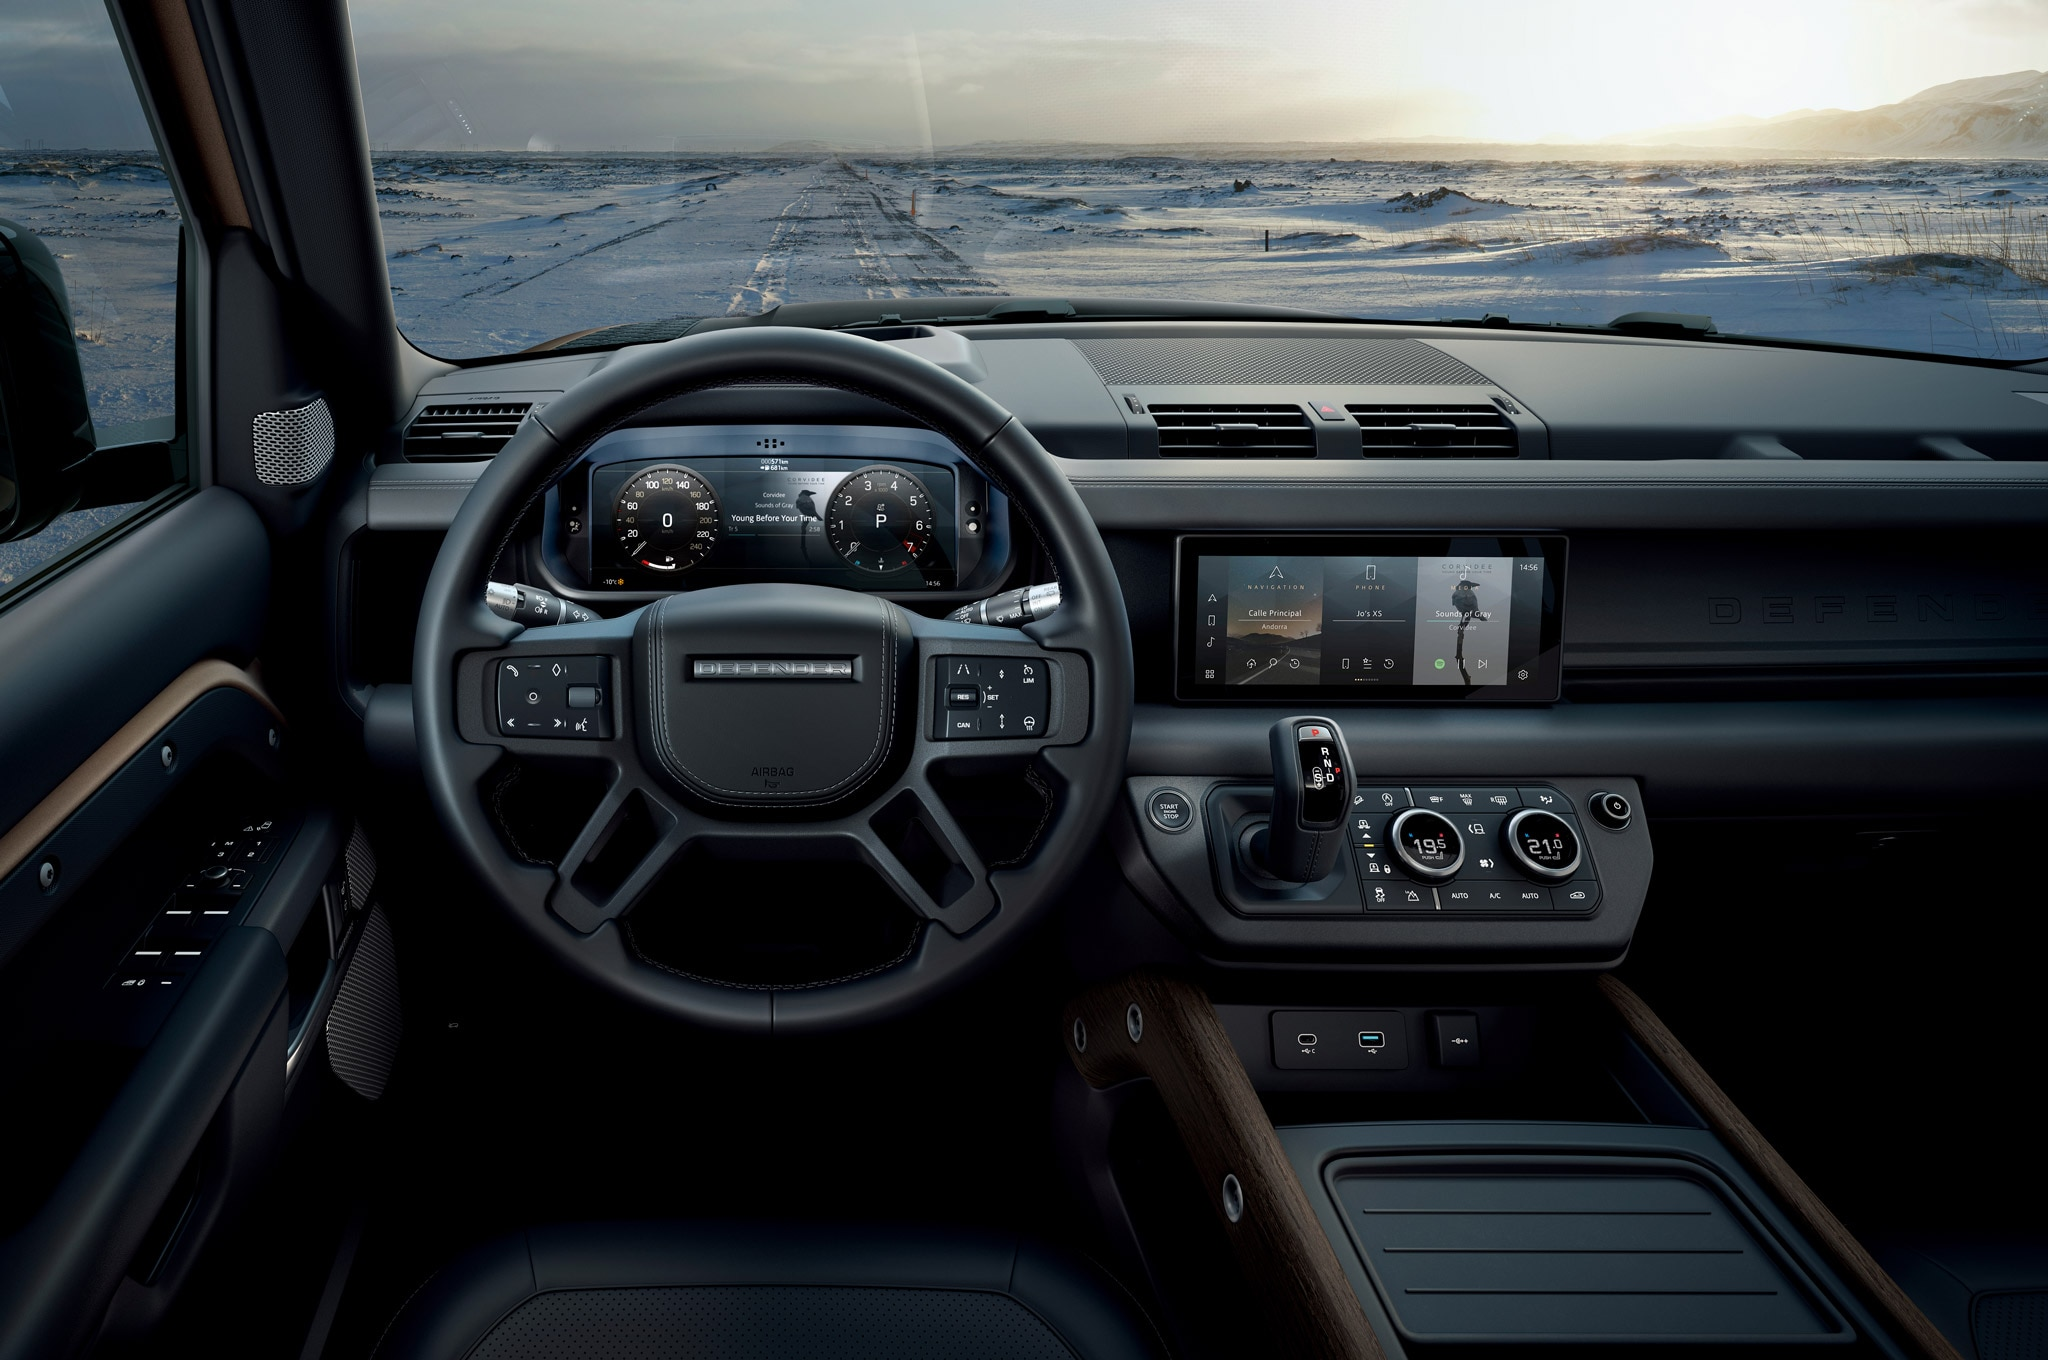 2020 land rover defender 110 interior cockpit